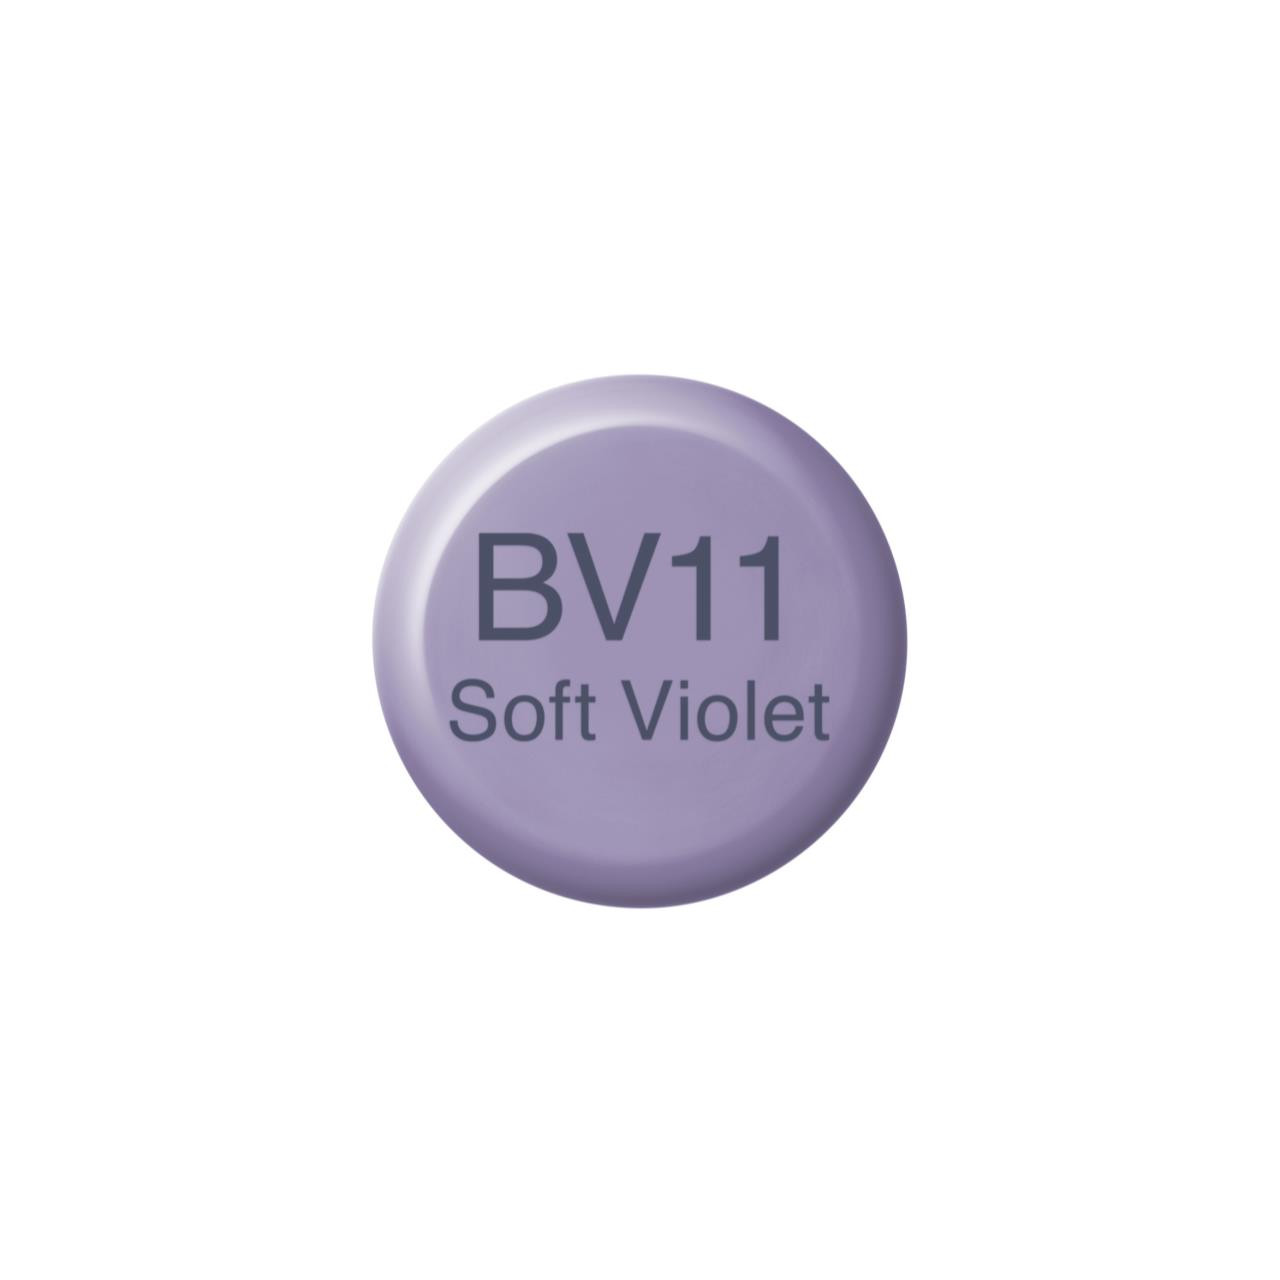 BV11 Soft Violet, Copic Ink - 4511338056493